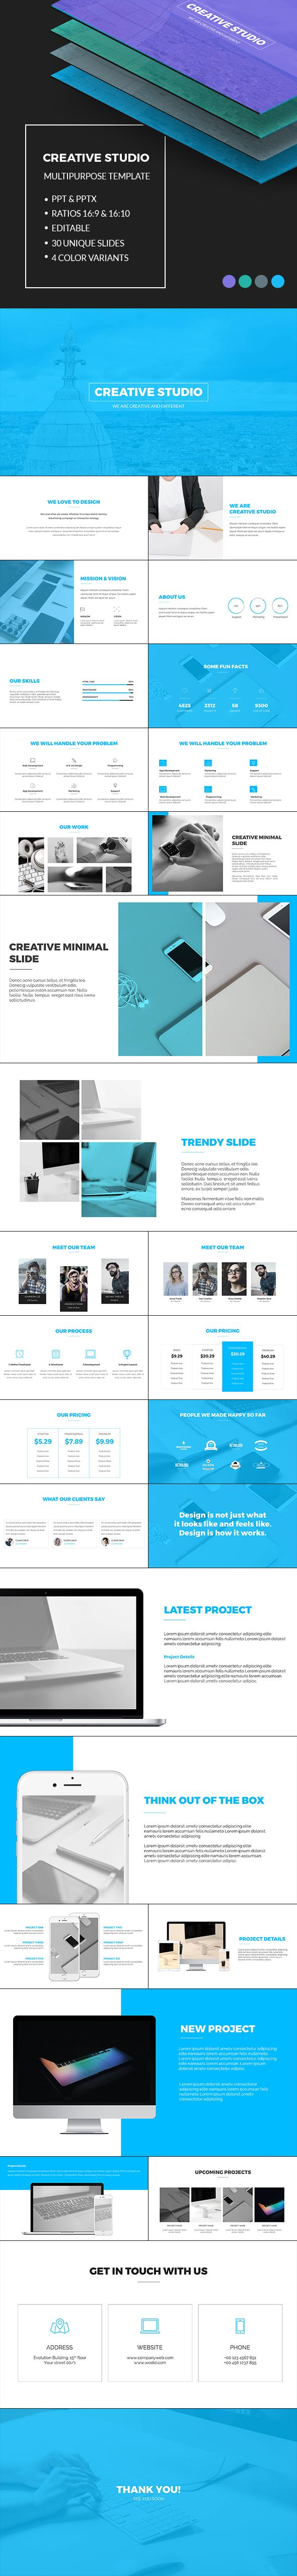 Corporate PowerPoint Template-V04